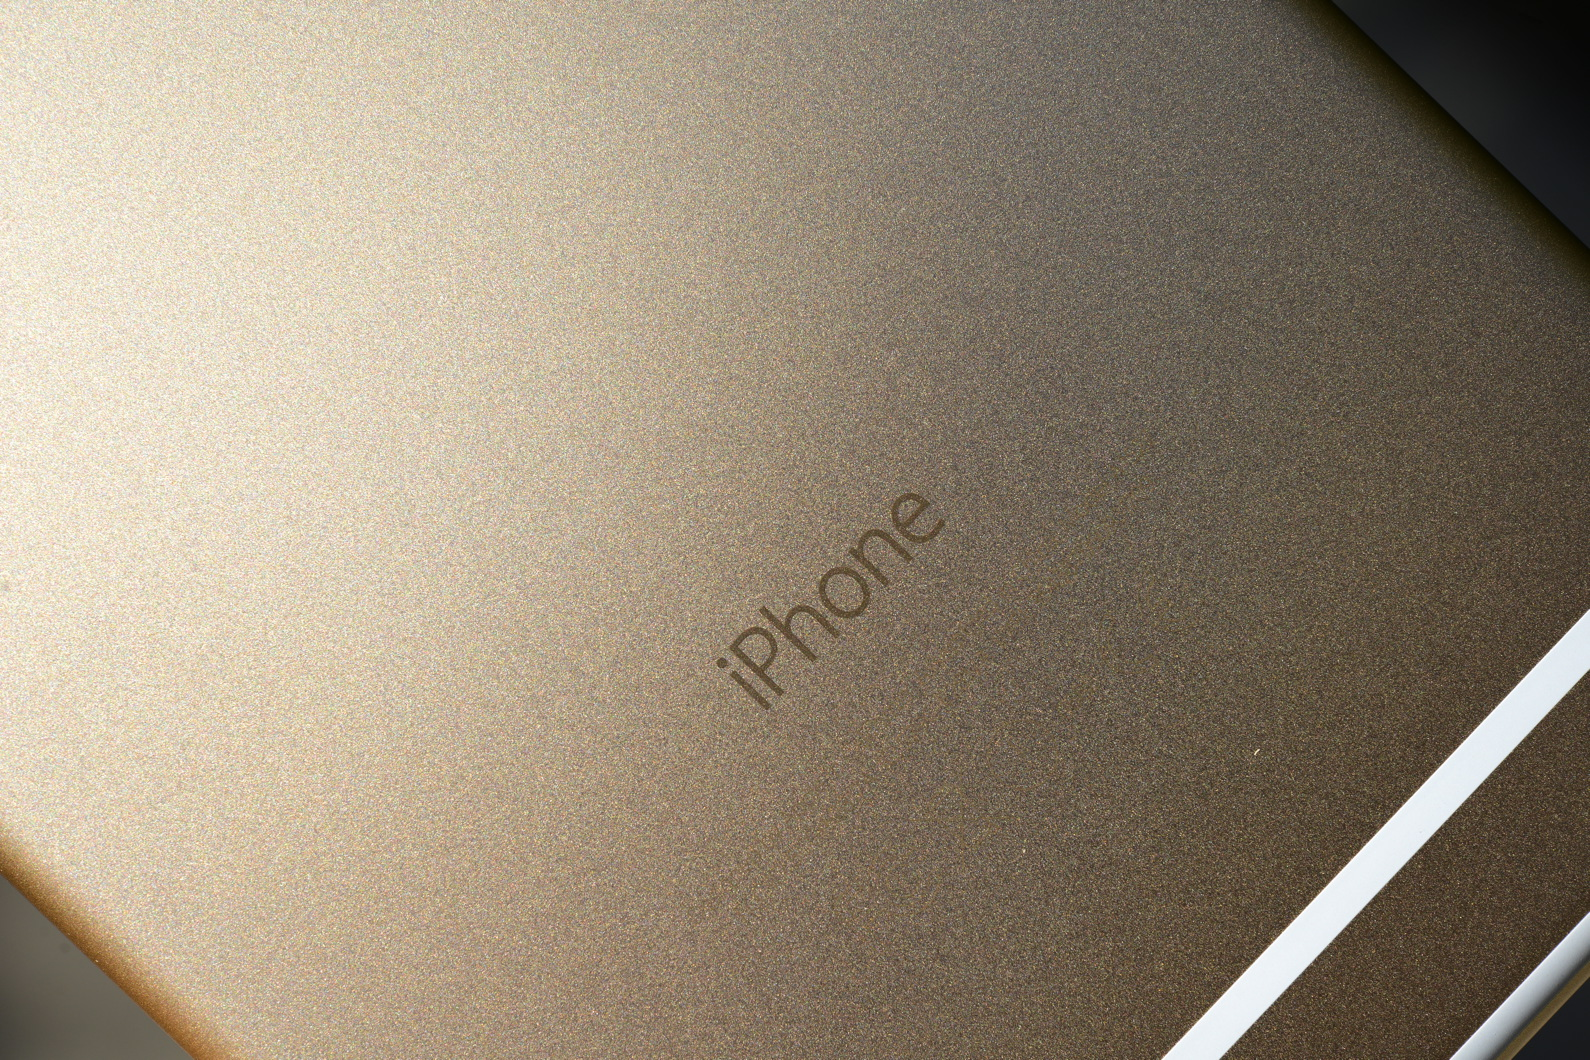 big_iphone6plus-hands-on_2705.jpg